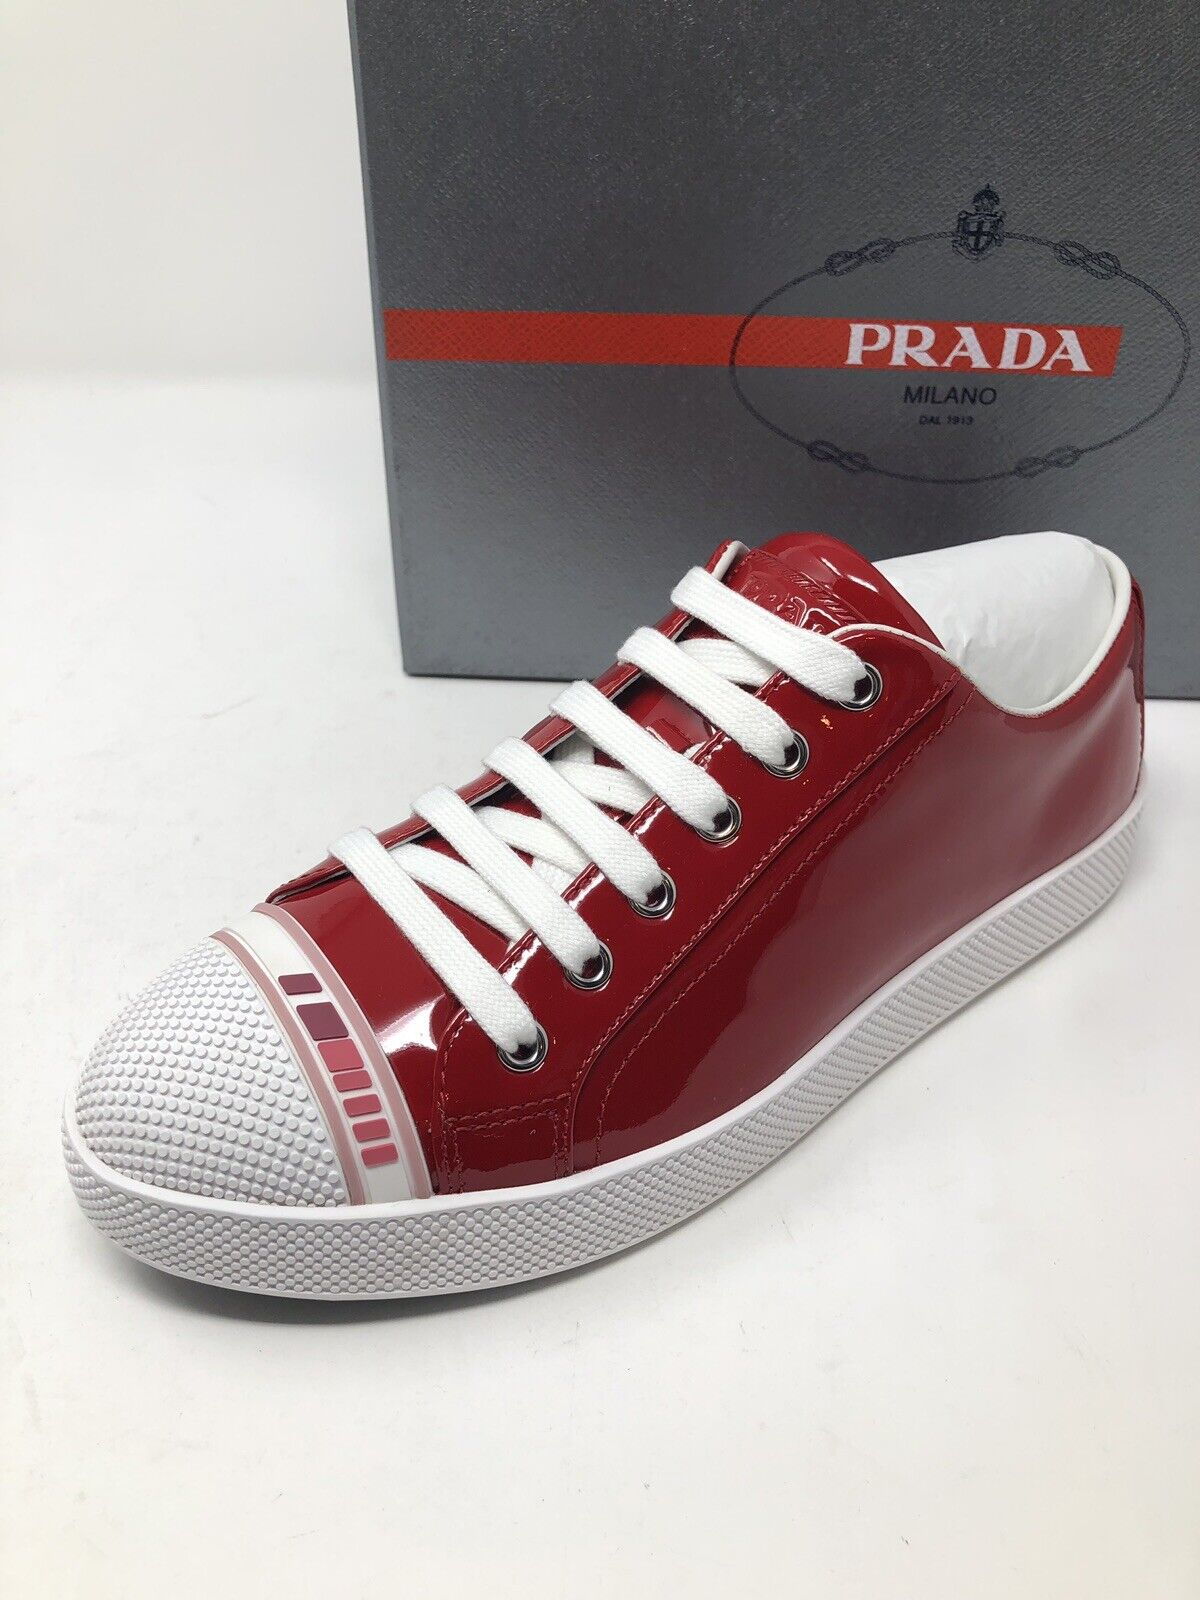 575 New PRADA Womens Vernice Red Sneakers Ladies shoes Size 7 US 37 UK